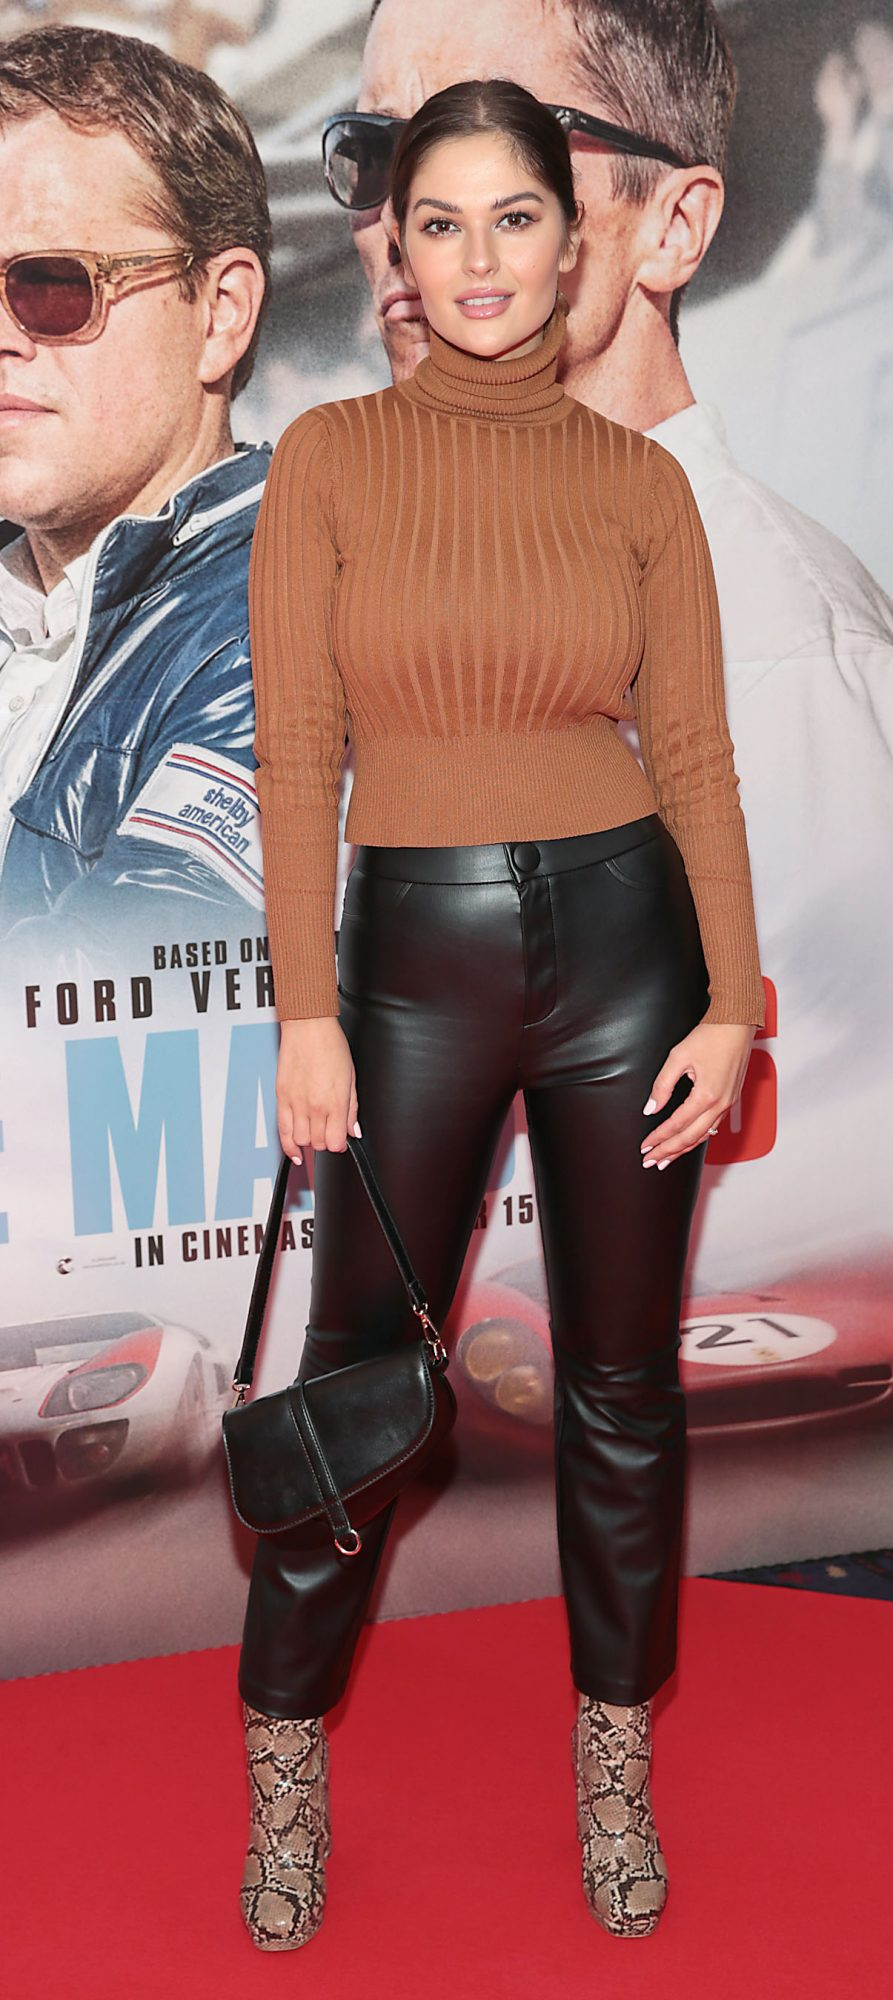 Natalia Petric pictured at the special preview screening of Le Mans '66 at Cineworld, Dublin. Photo: Brian McEvoy.